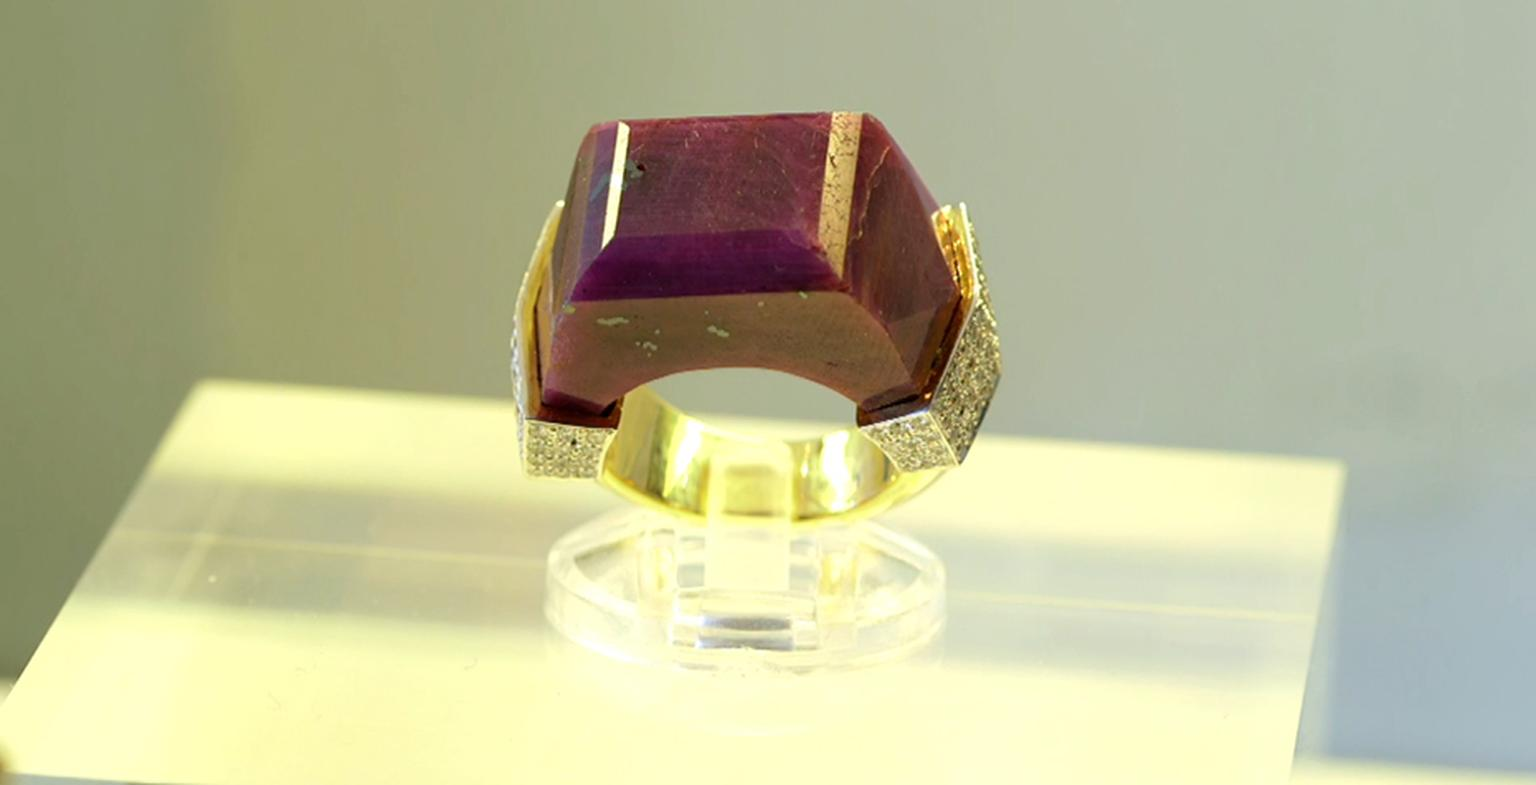 Jade Jagger Never Ending jewellery collection ruby ring. Available at 1stdibs.com.